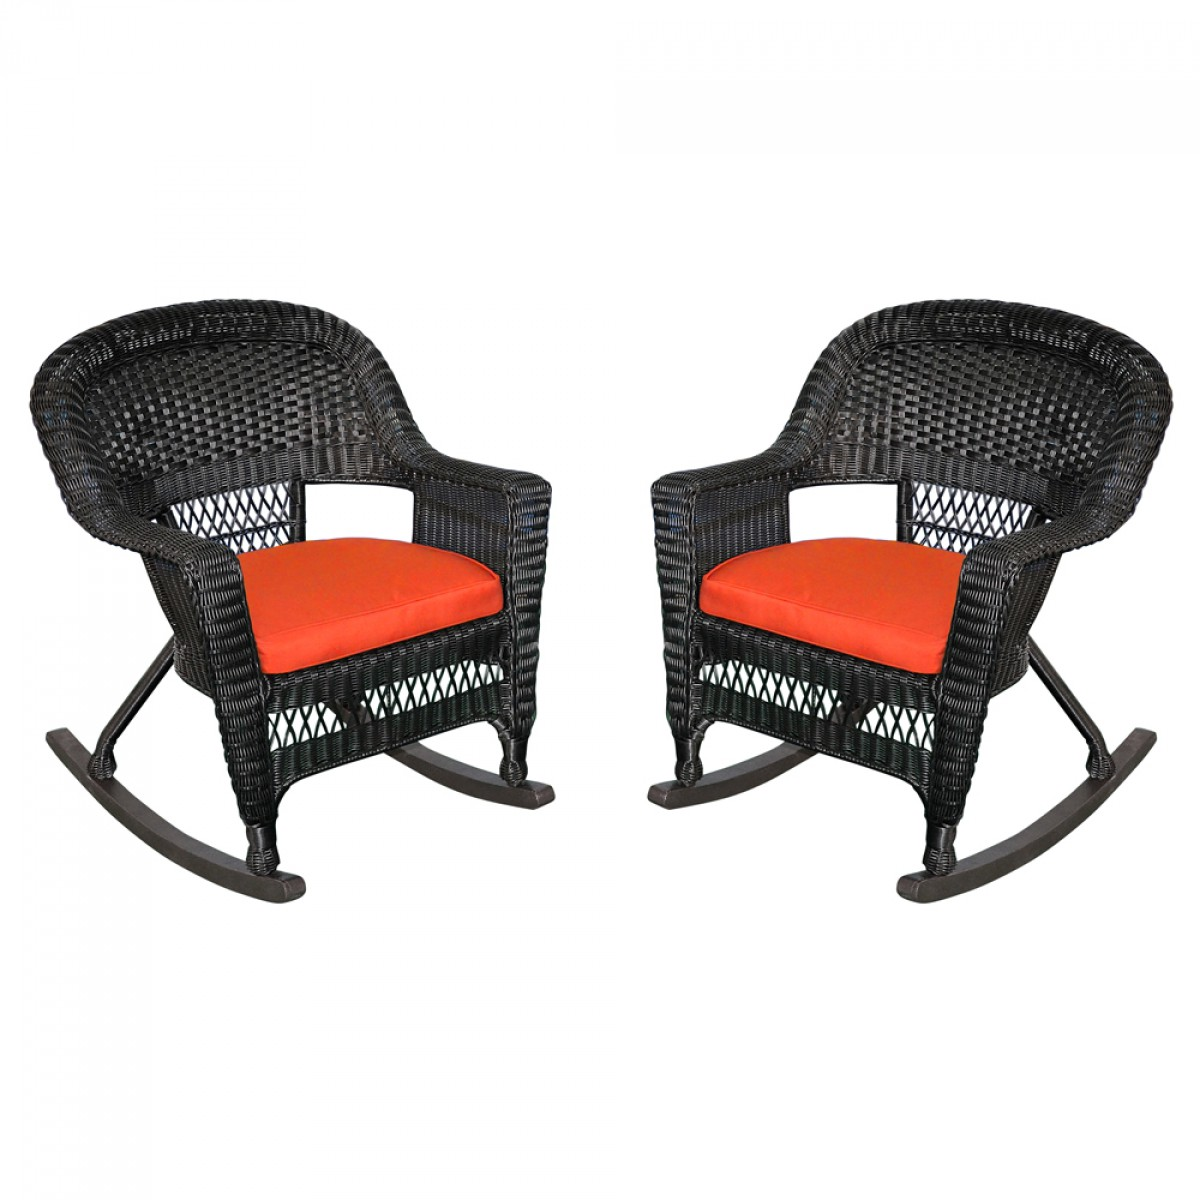 Black Rocker Wicker Chair With Red Cushion Set Of 2 also Ikea Rocking Chair For Nursing Mothers as well Swivel Rattan Chair Cushions besides Outdoor Rocker Rocking Chair Seat Cushion Pad Choice Of also Am Rockerset Sun Ryo. on indoor rocking chair cushion set